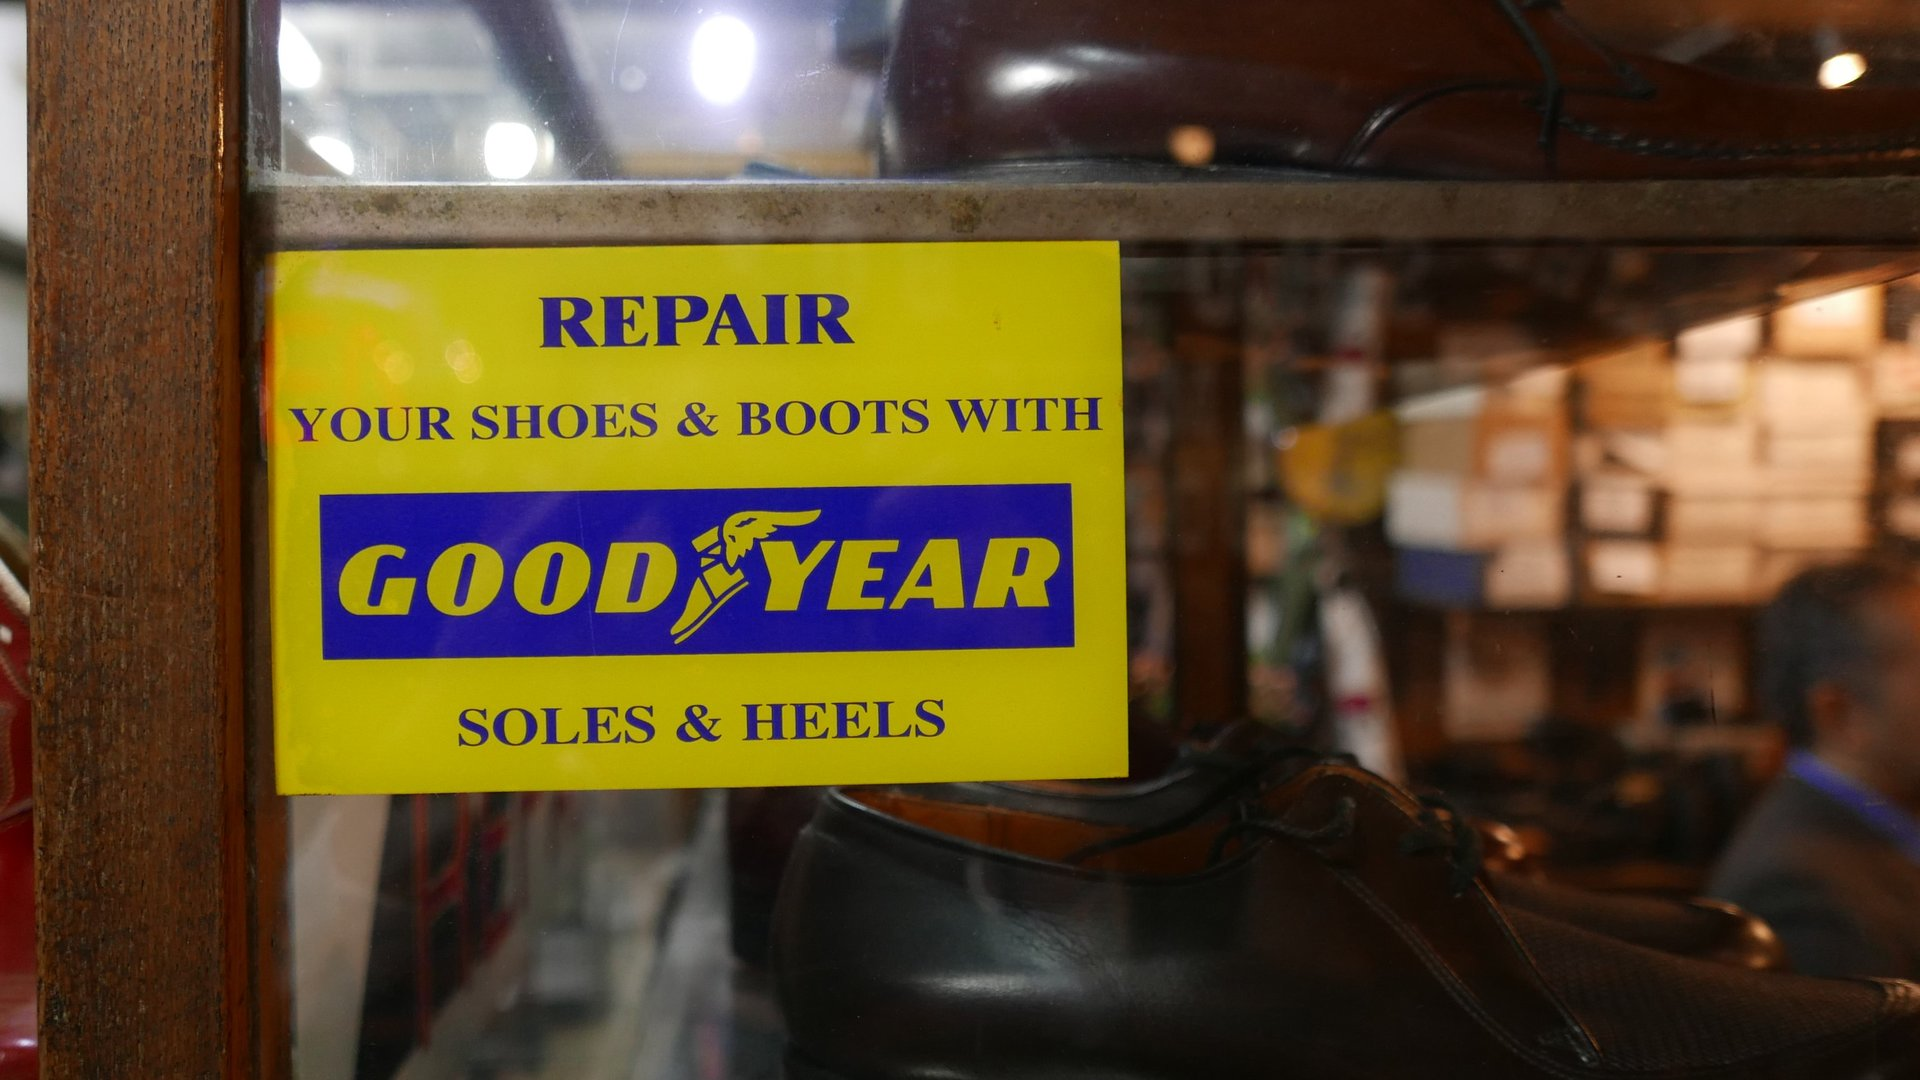 Goodyear shoes